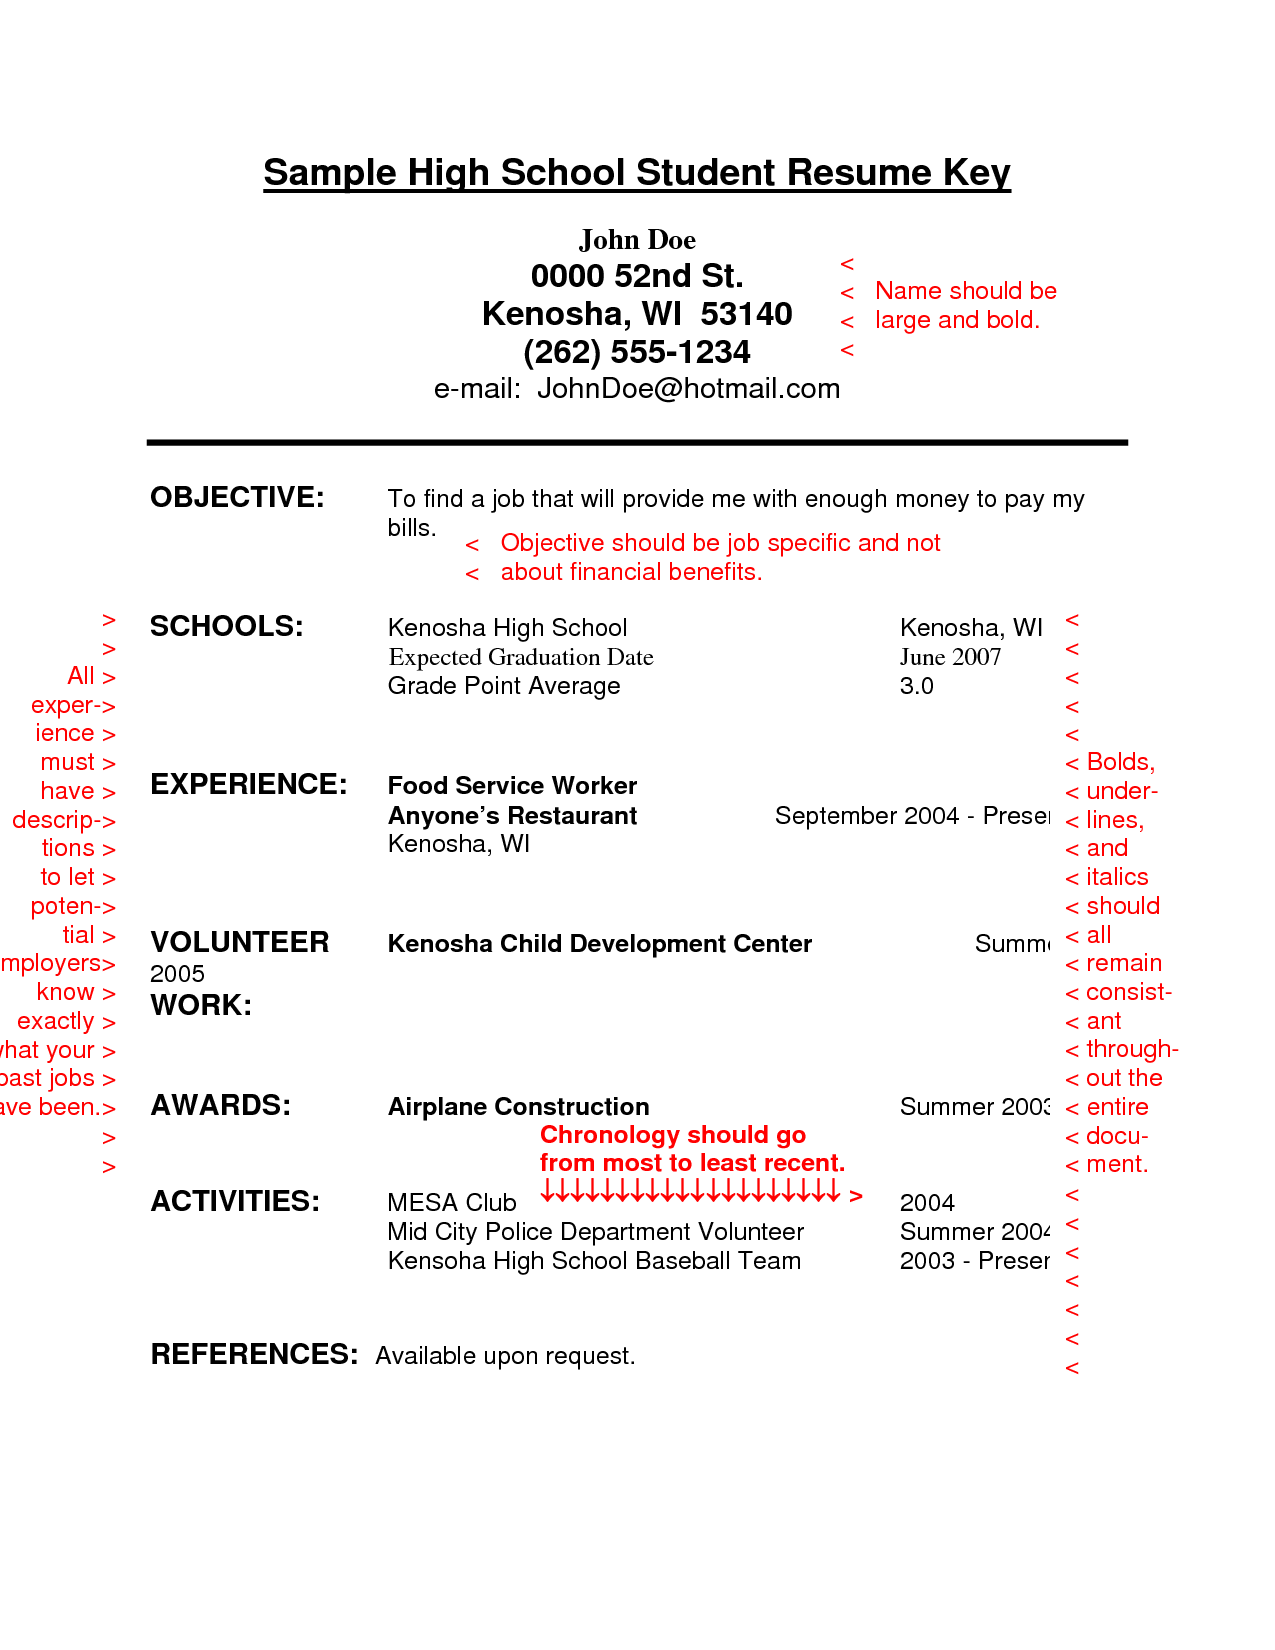 Attractive Resume Sample For High School Students With No Experience   Http://www. Throughout Resume Sample For High School Student